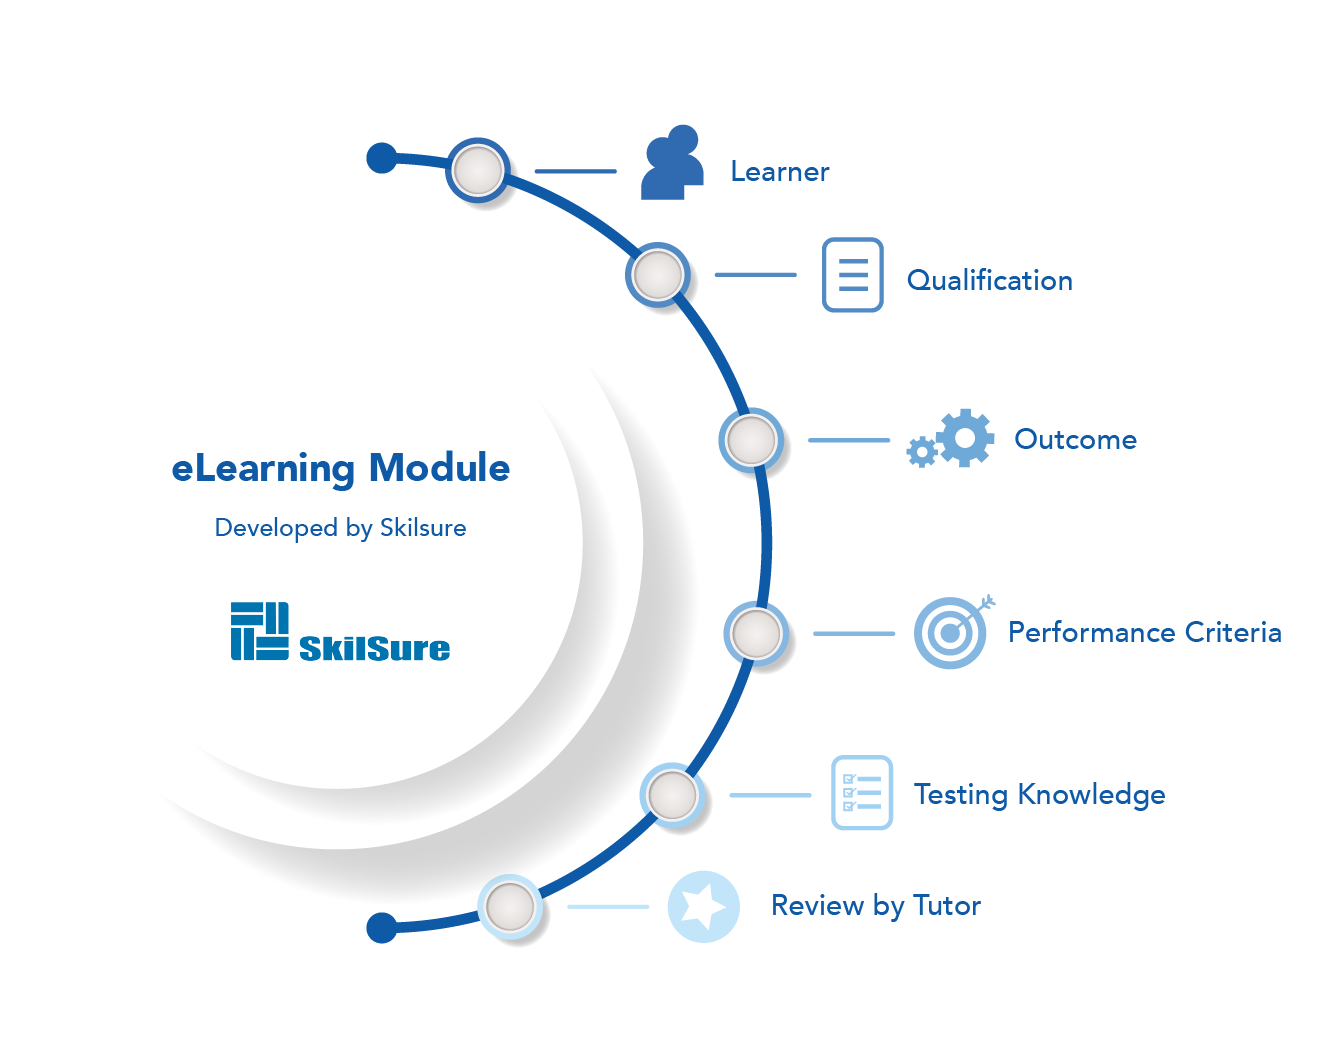 elearning process